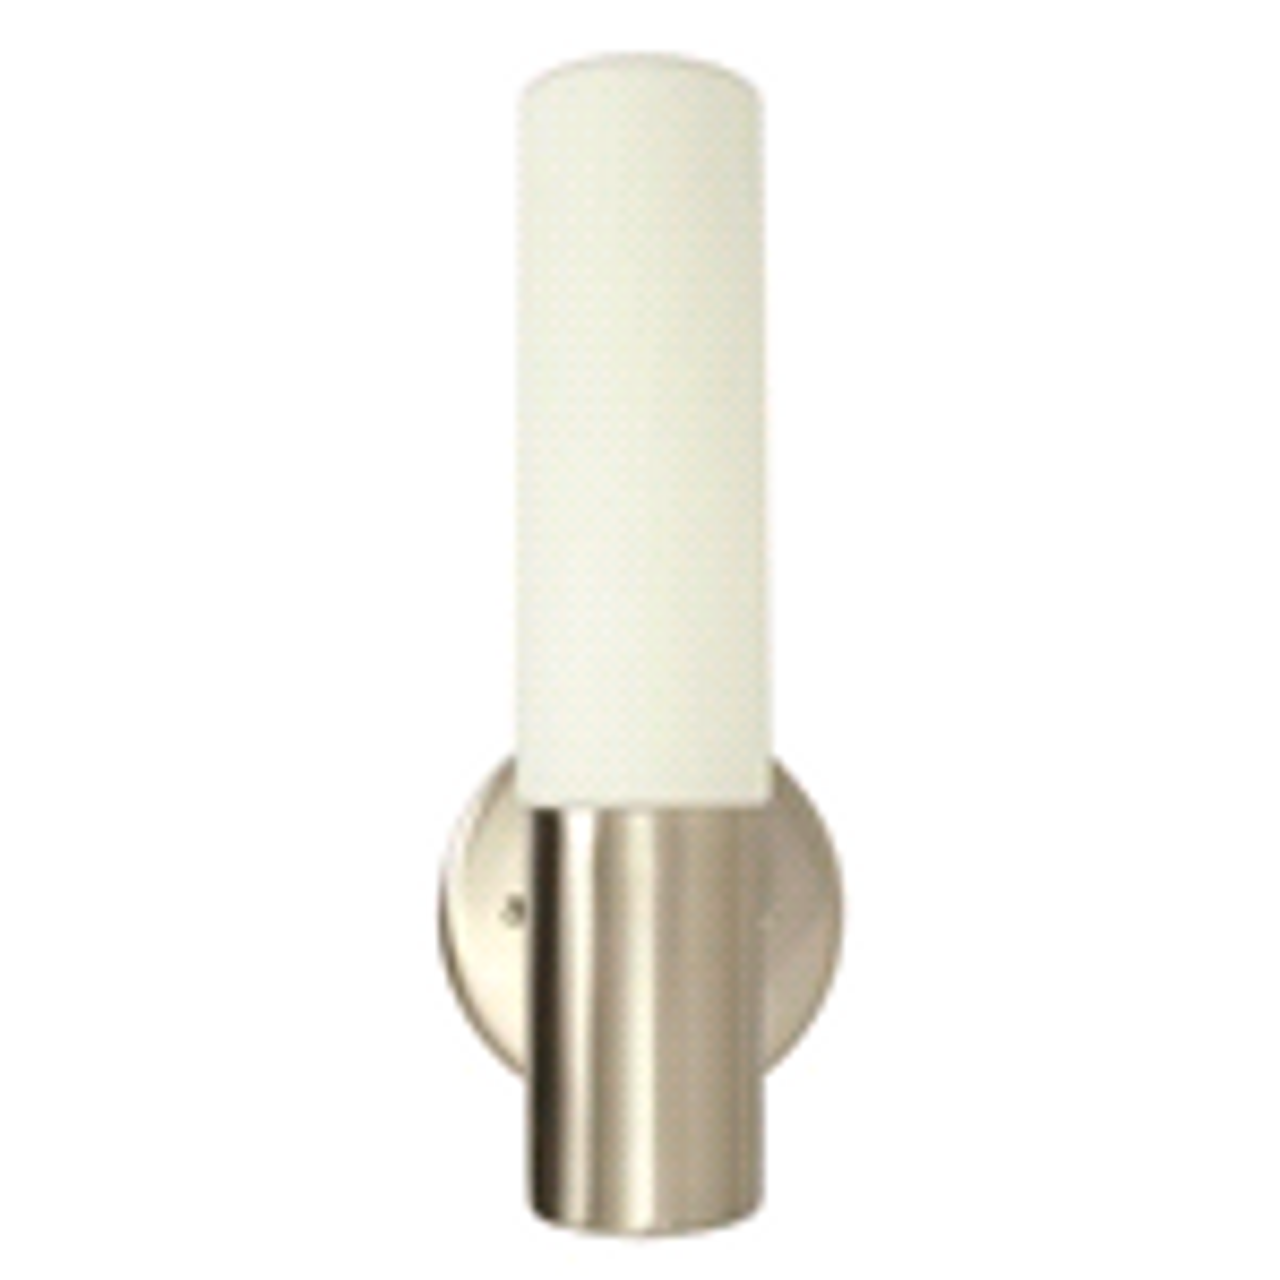 Monument | Base Bulb Wall Light Fixture | MONUMENT2479596